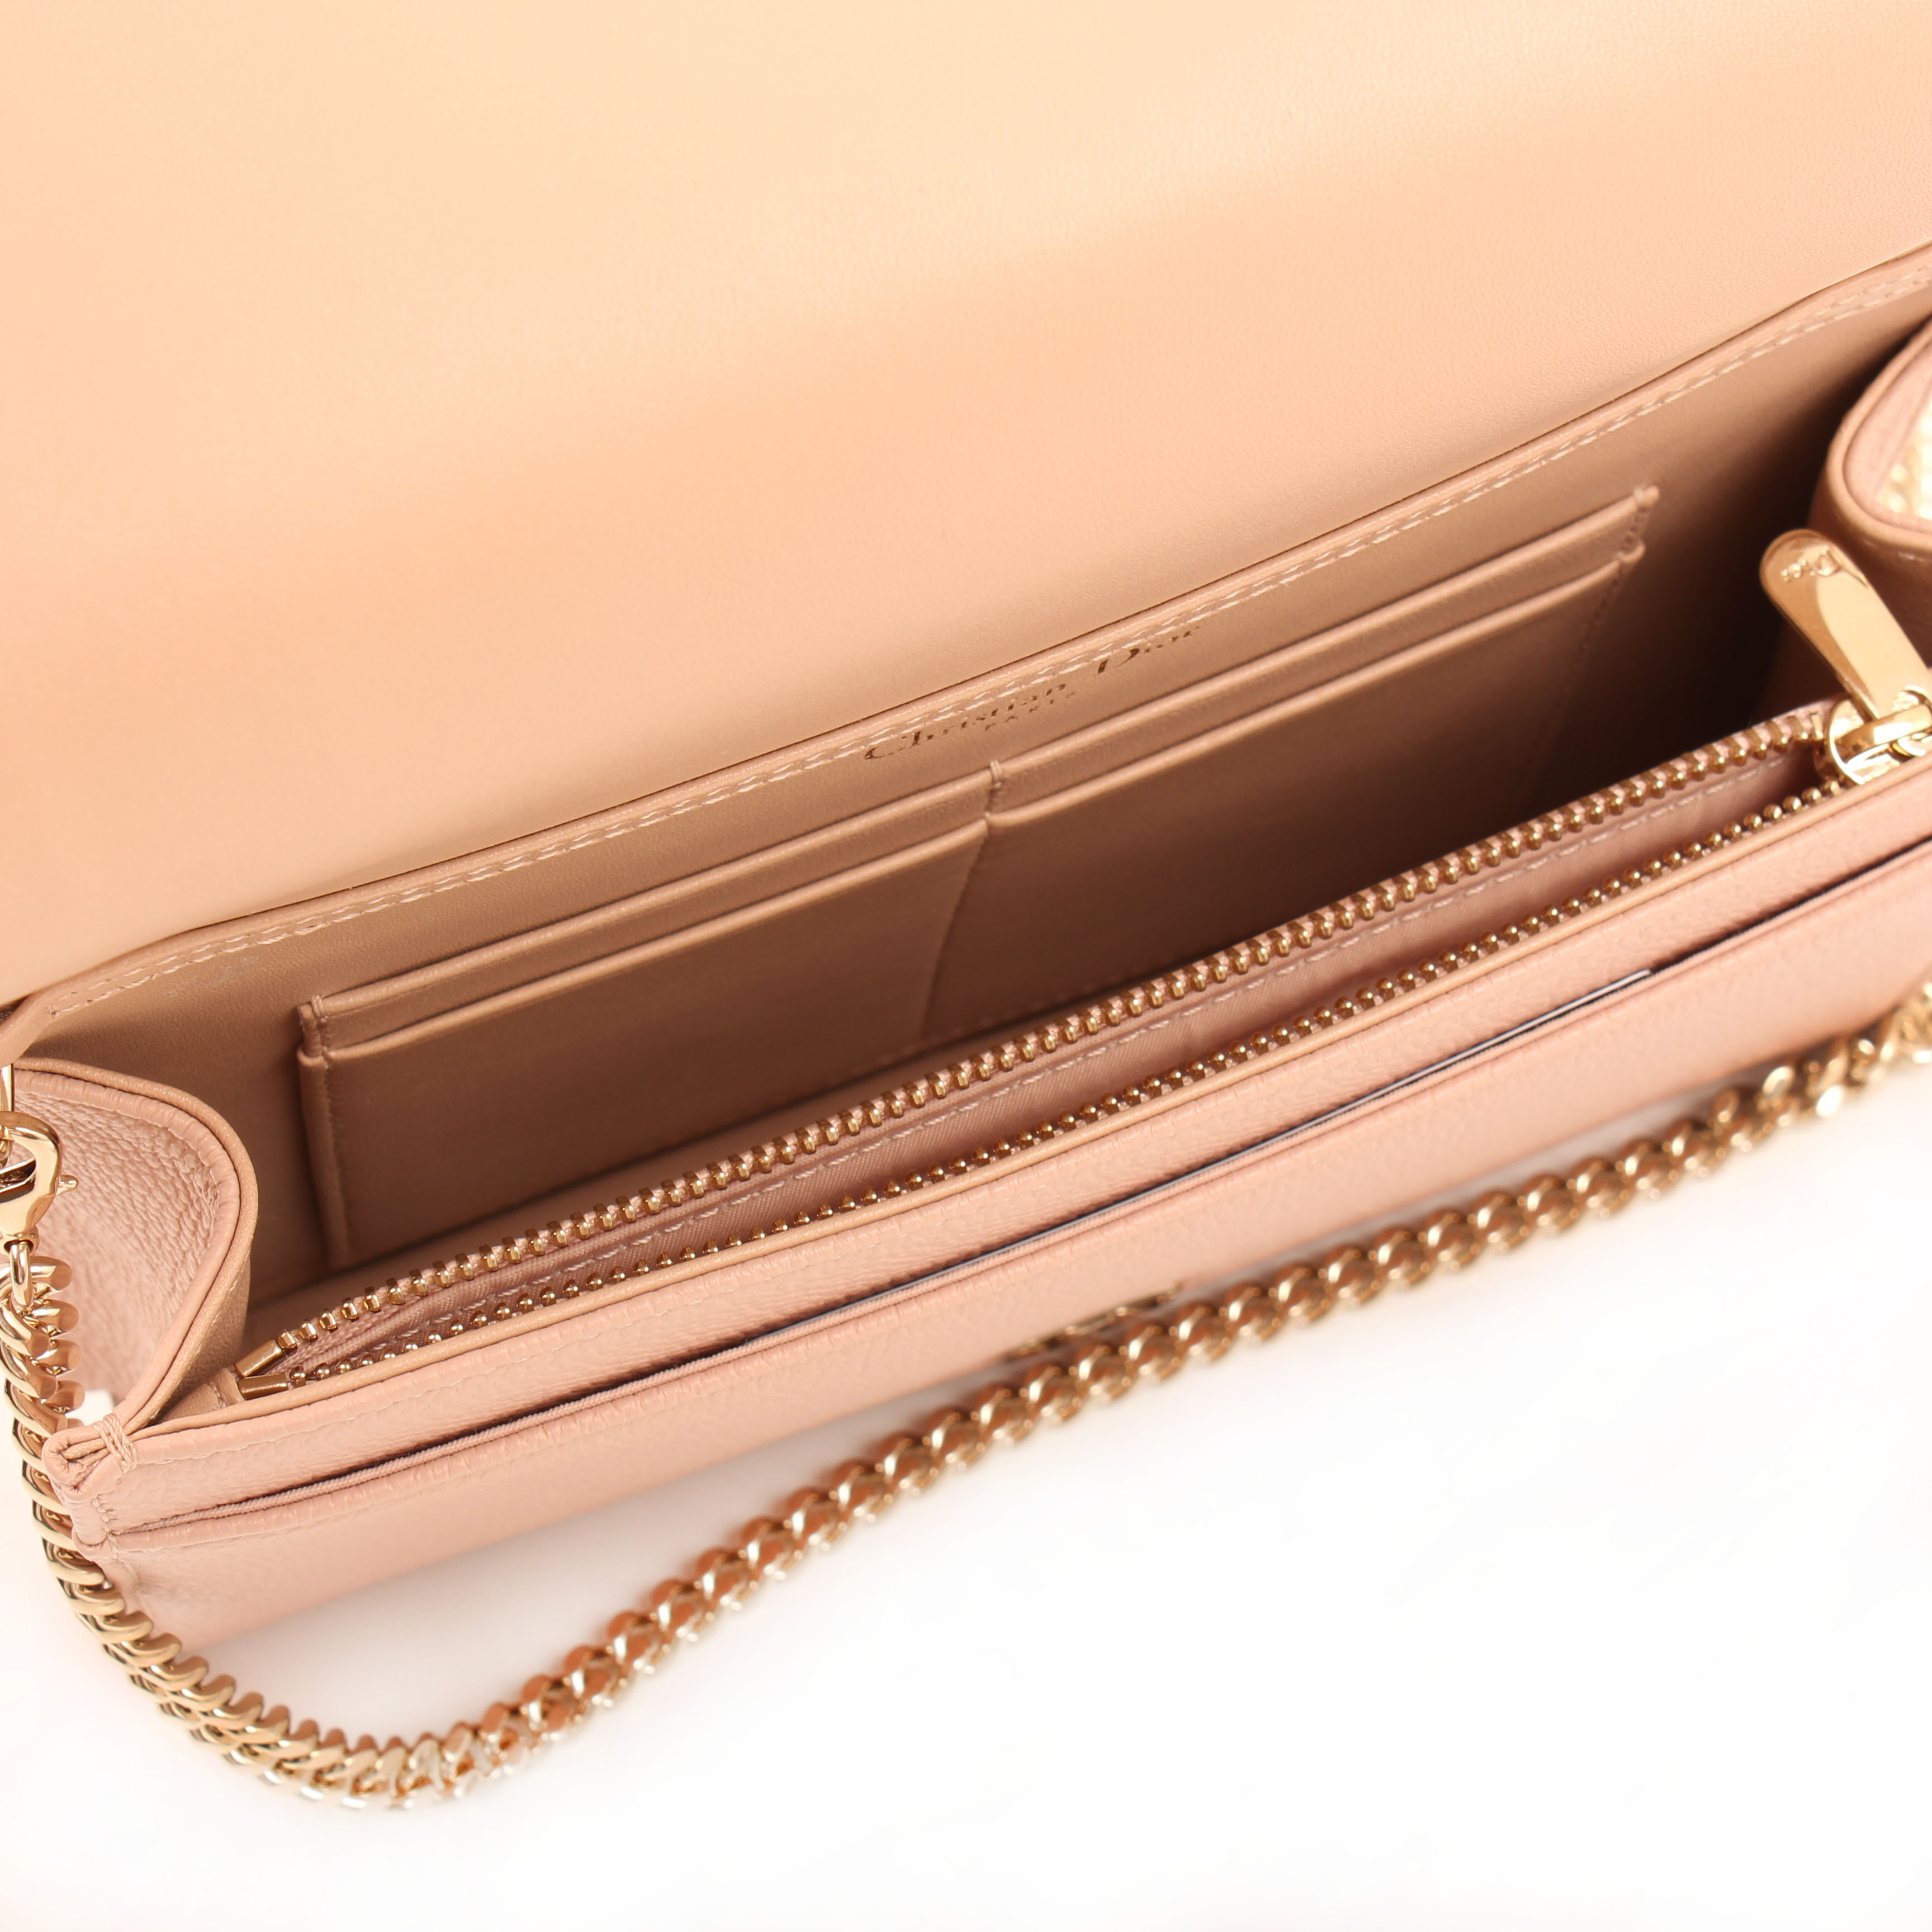 wallet on chain dior diorama pouch rosa nude interior